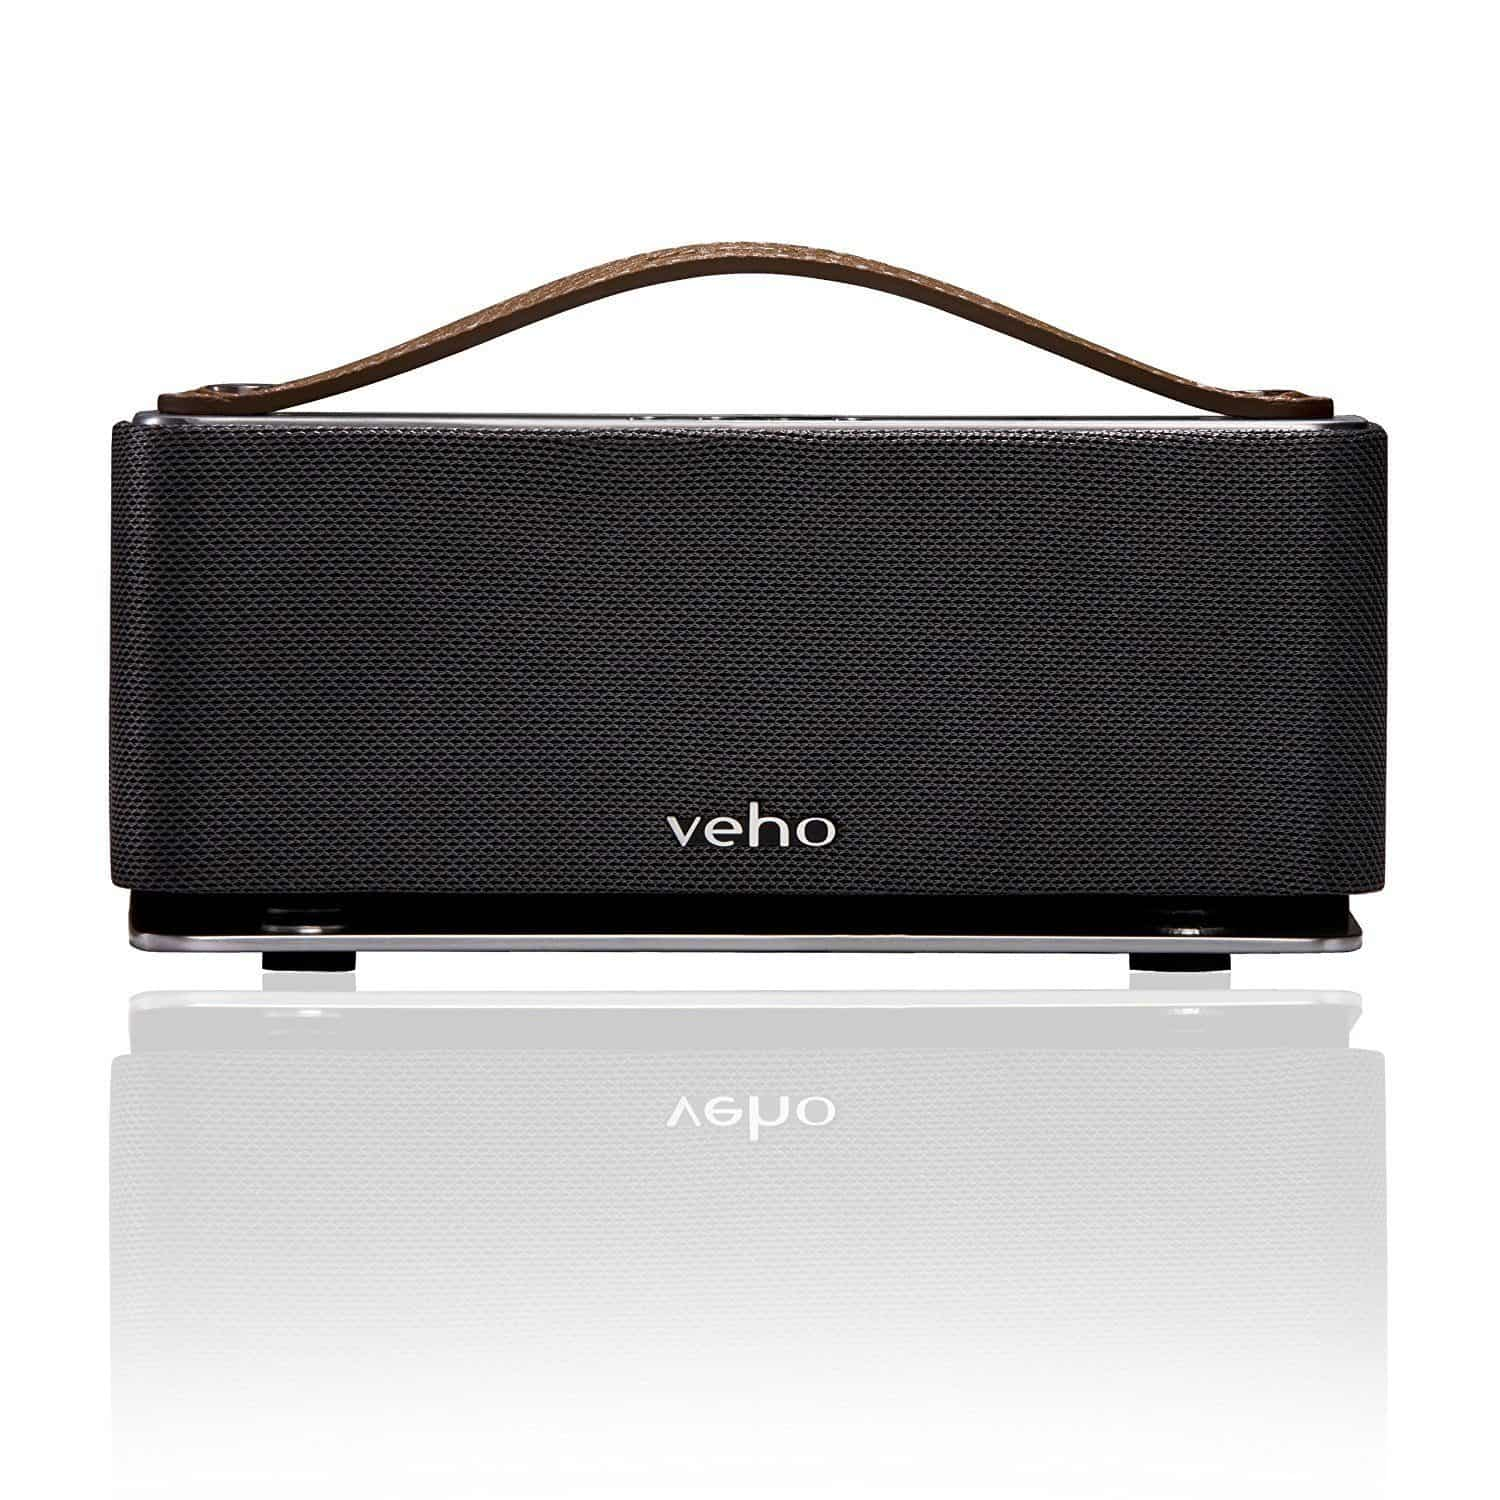 Best Retro Speakers for the Money – Veho